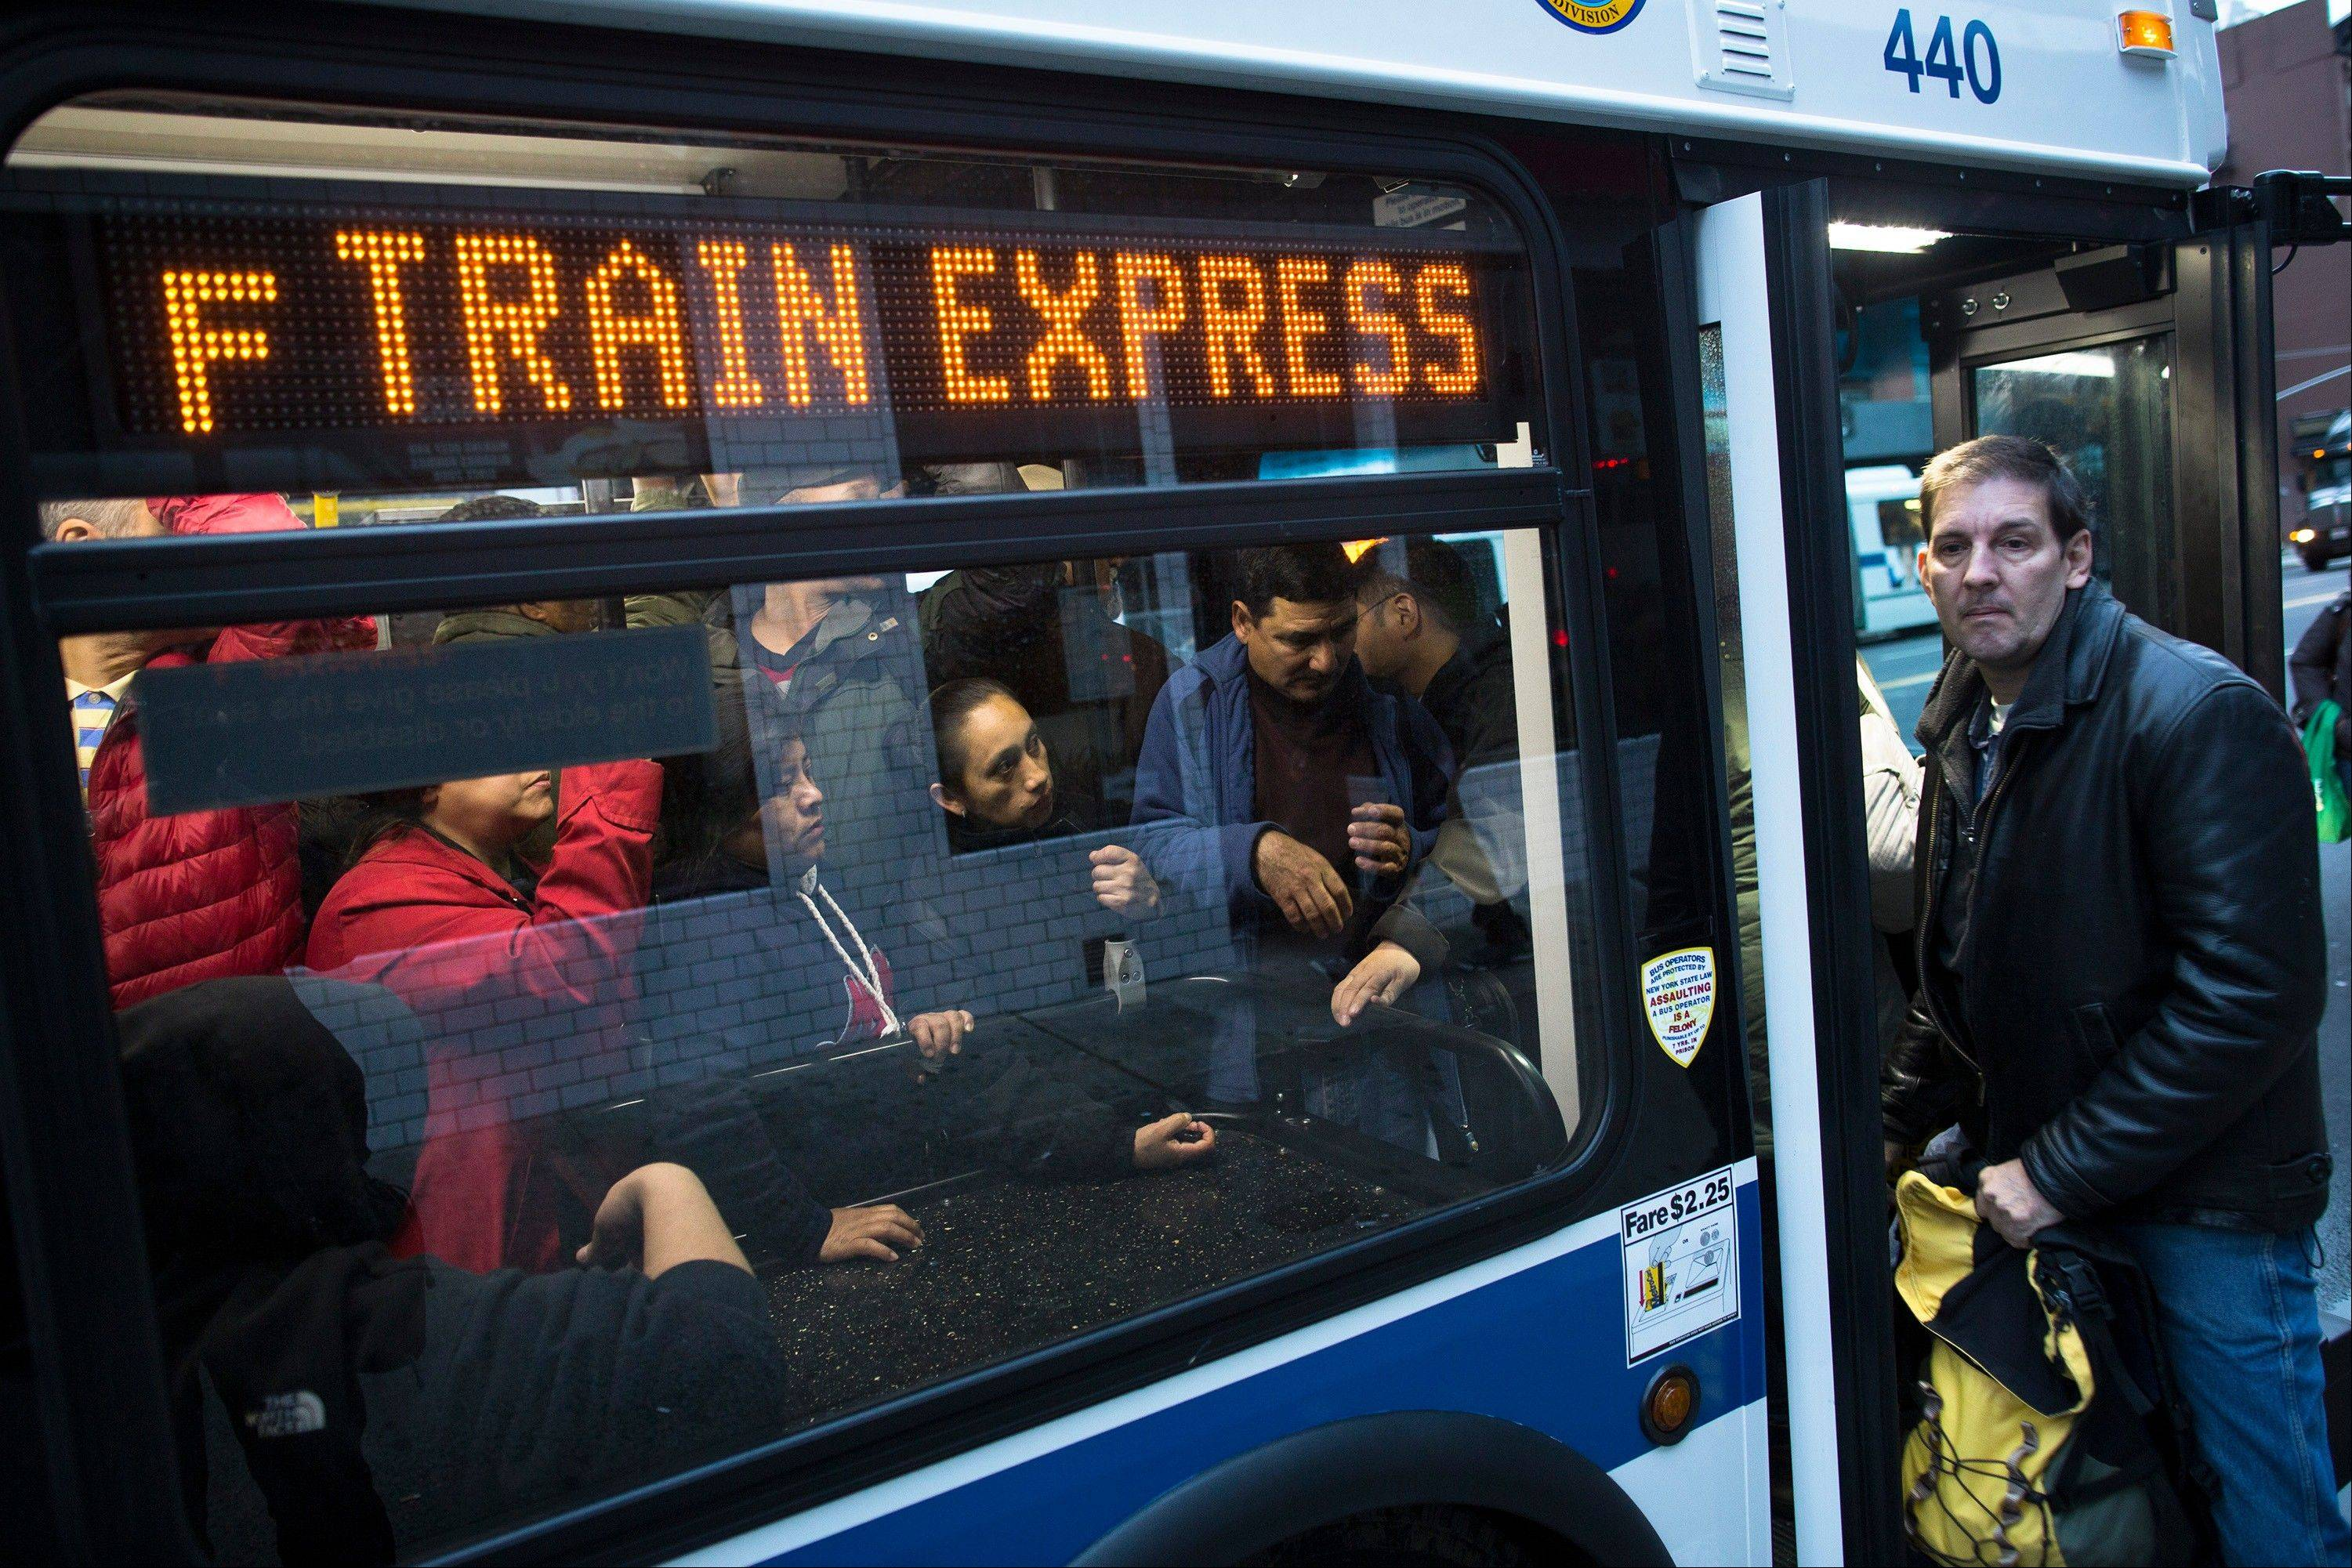 A passenger is turned away Friday from an overcrowded bus in New York intended to help ferry commuters as subway systems below 34th Street remain offline due to Superstorm Sandy.